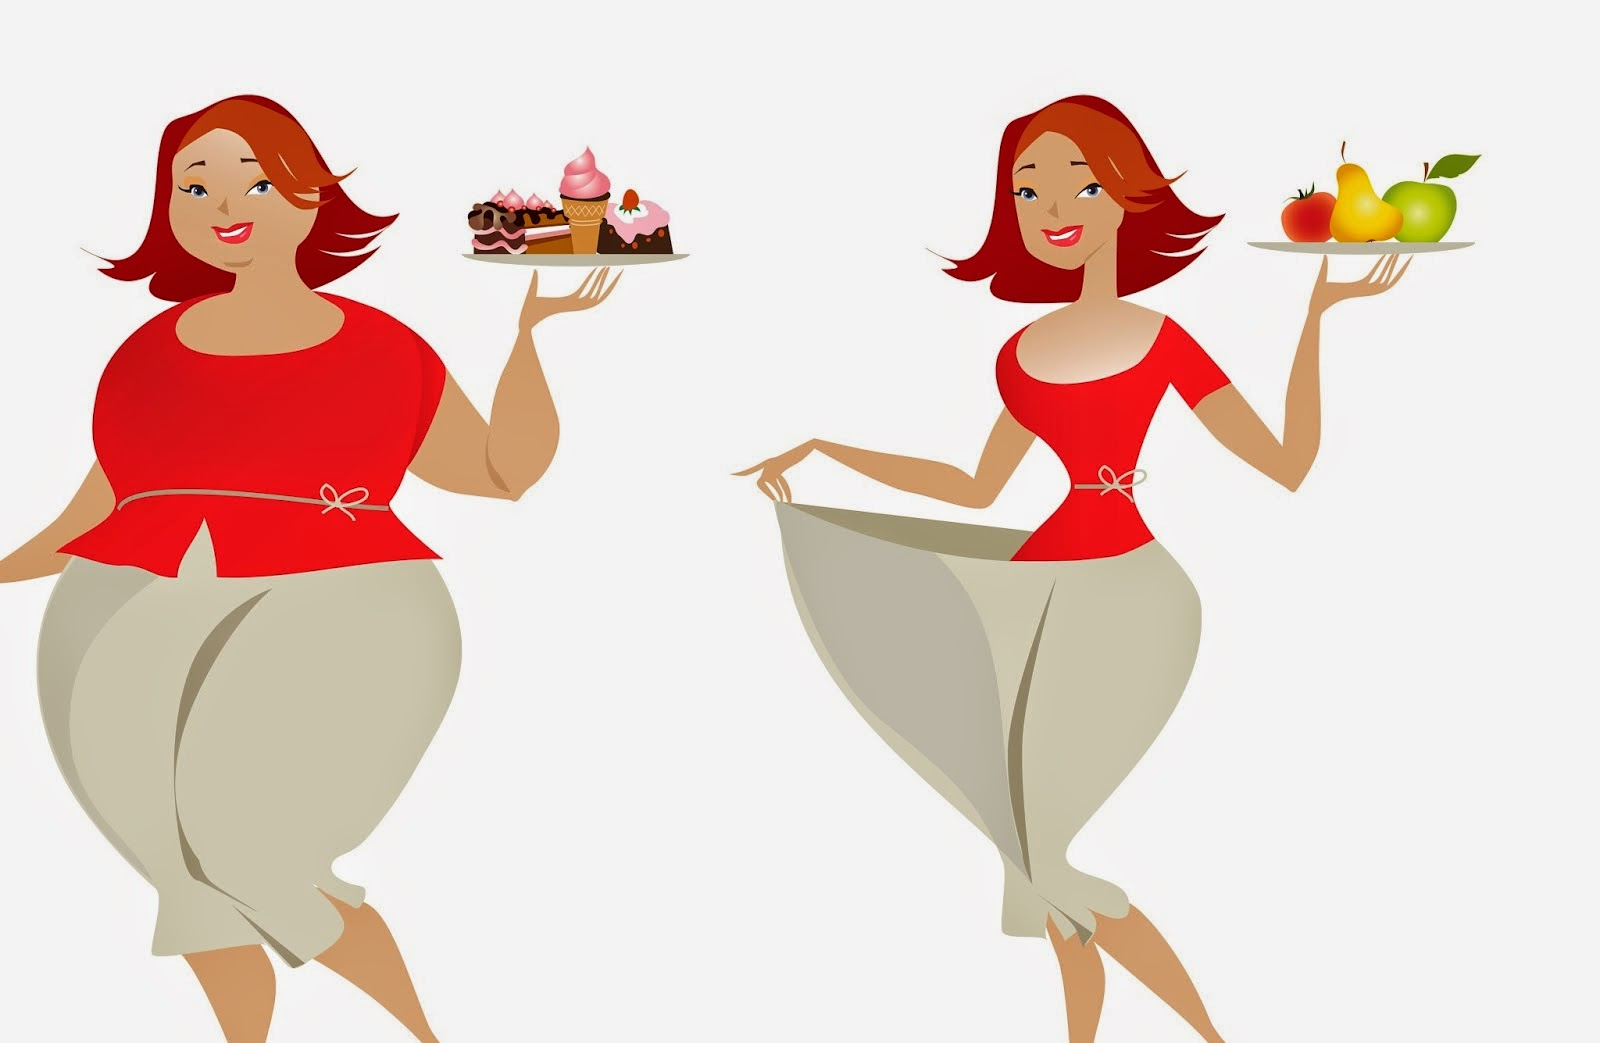 How to get rid of excess weight Circular flow QI 96